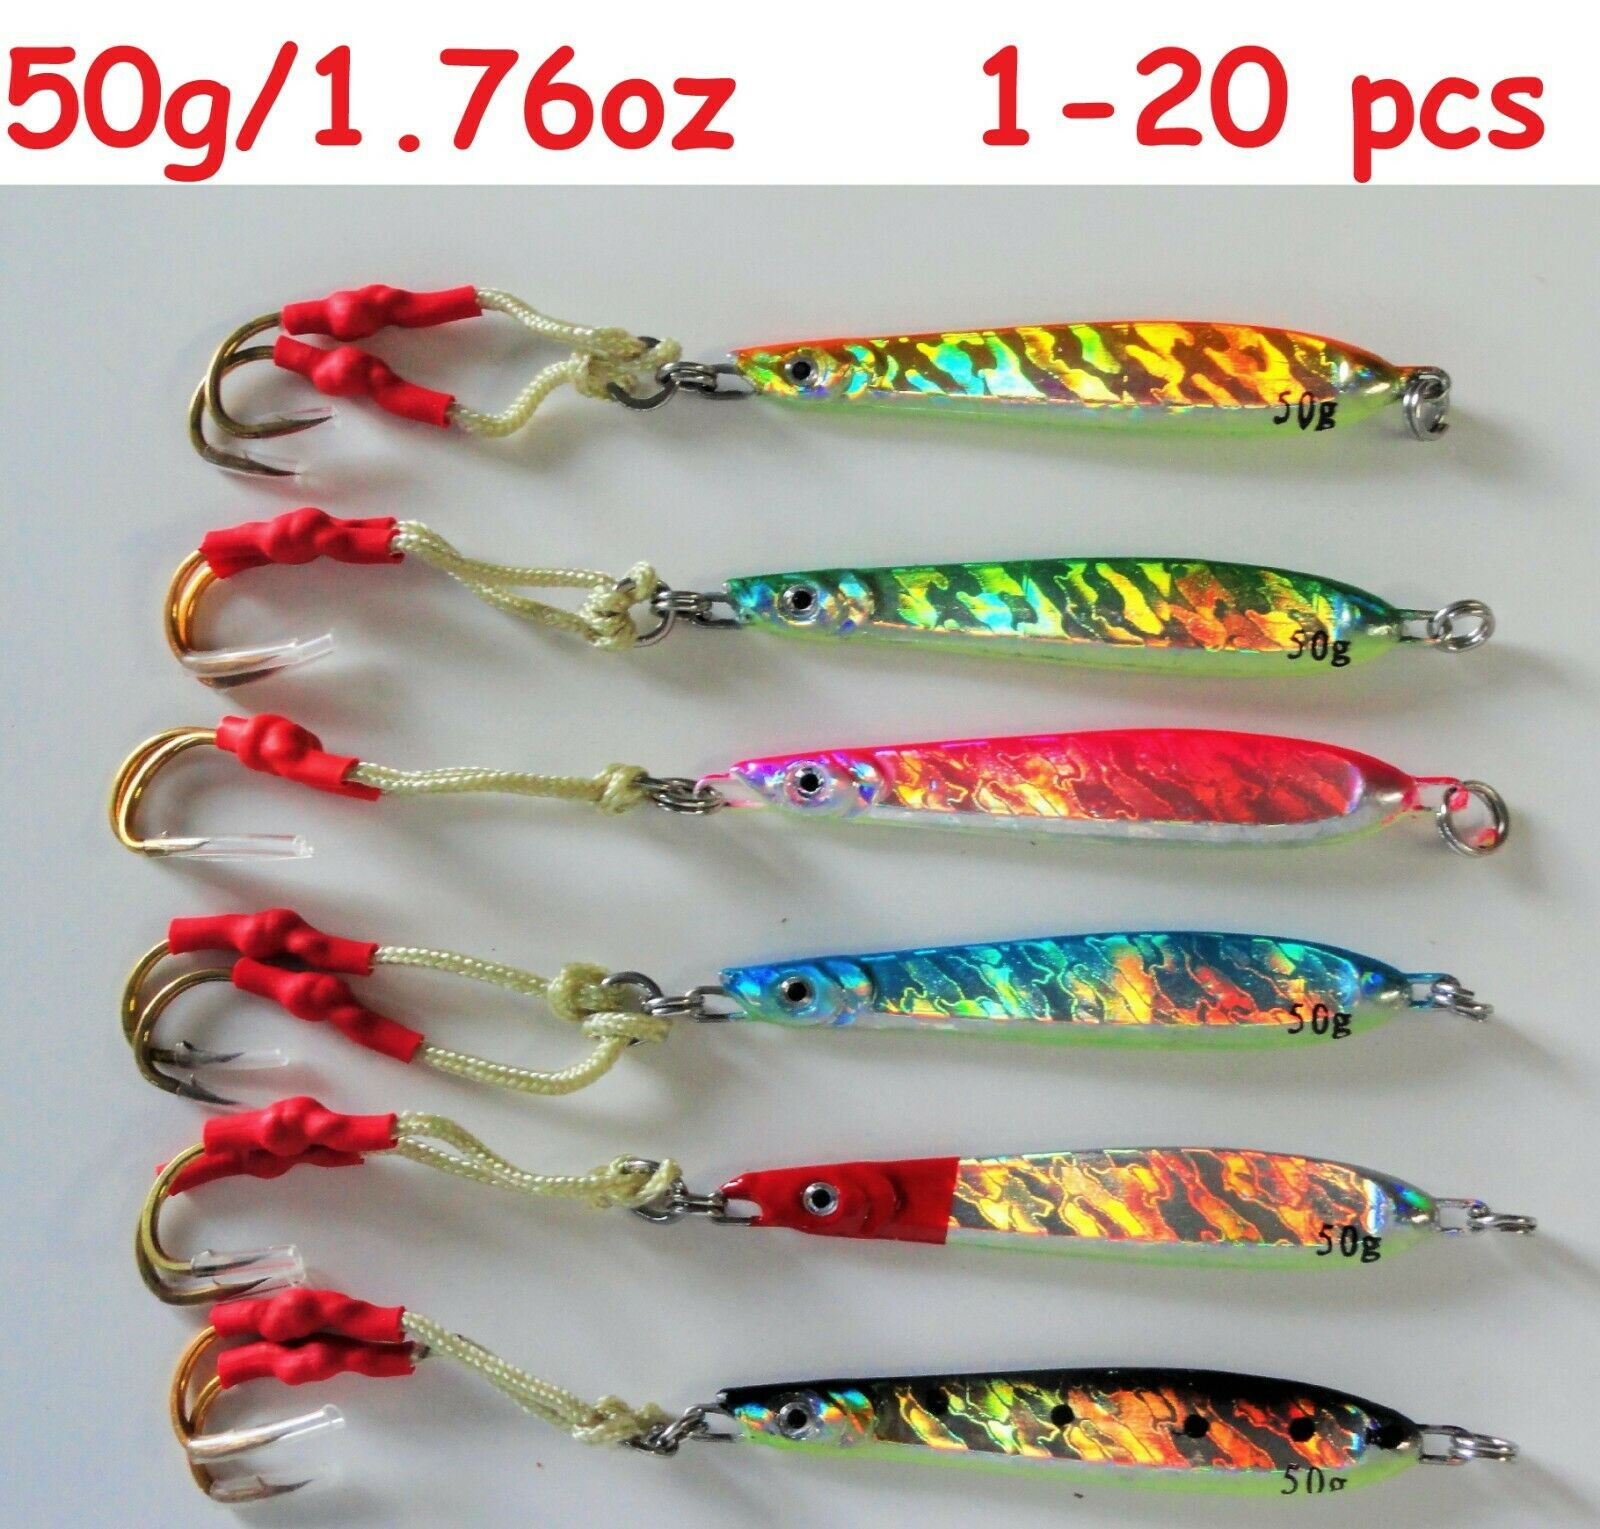 1-20 pcs Knife  Jigs 50g 1.75oz greenical Speed Butterfly Saltwater Fishing Lures  amazing colorways